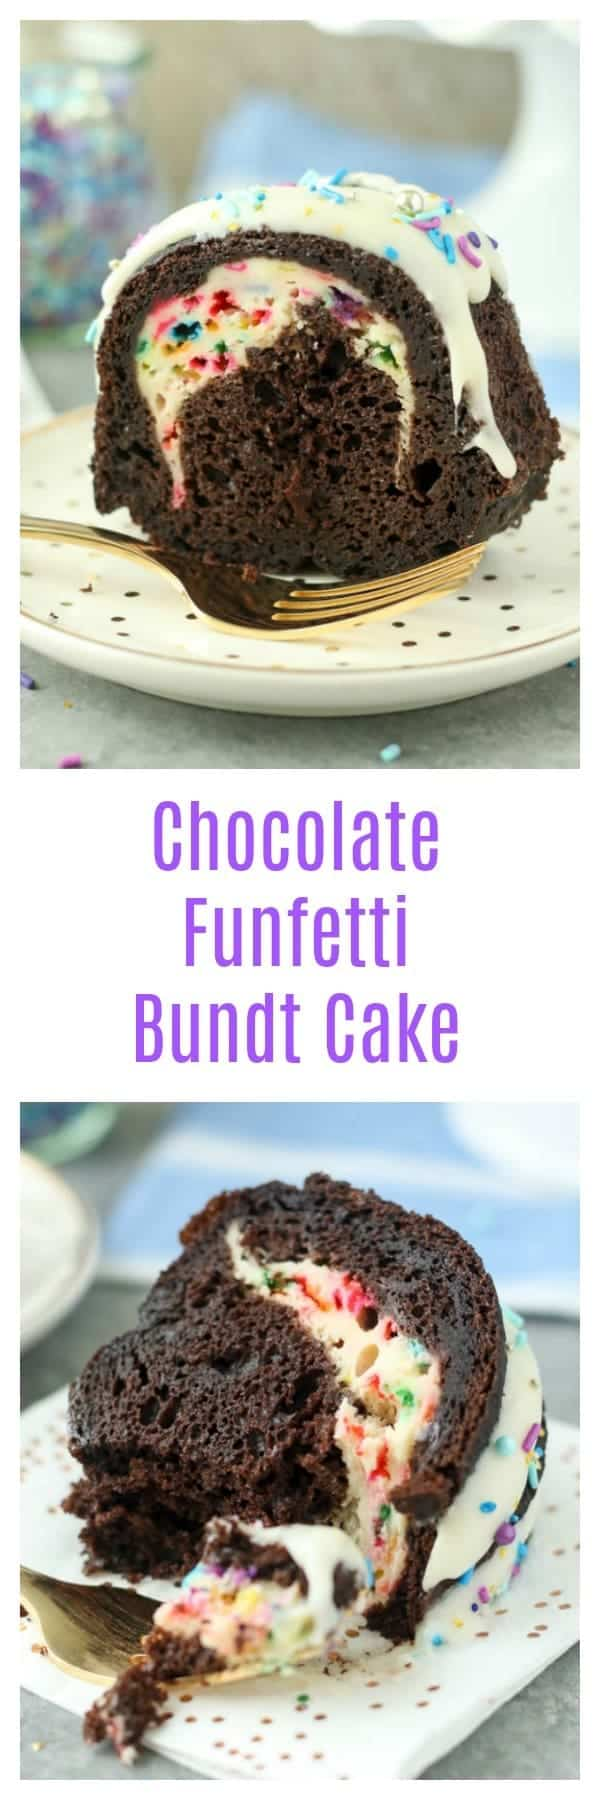 One bite of this Chocolate Funfetti Cheesecake Bundt Cake is not enough. This dark chocolate cake is filled with a funfetti cheesecake filling and a cream cheese glaze. Plus, there's plenty of sprinkles to go along!